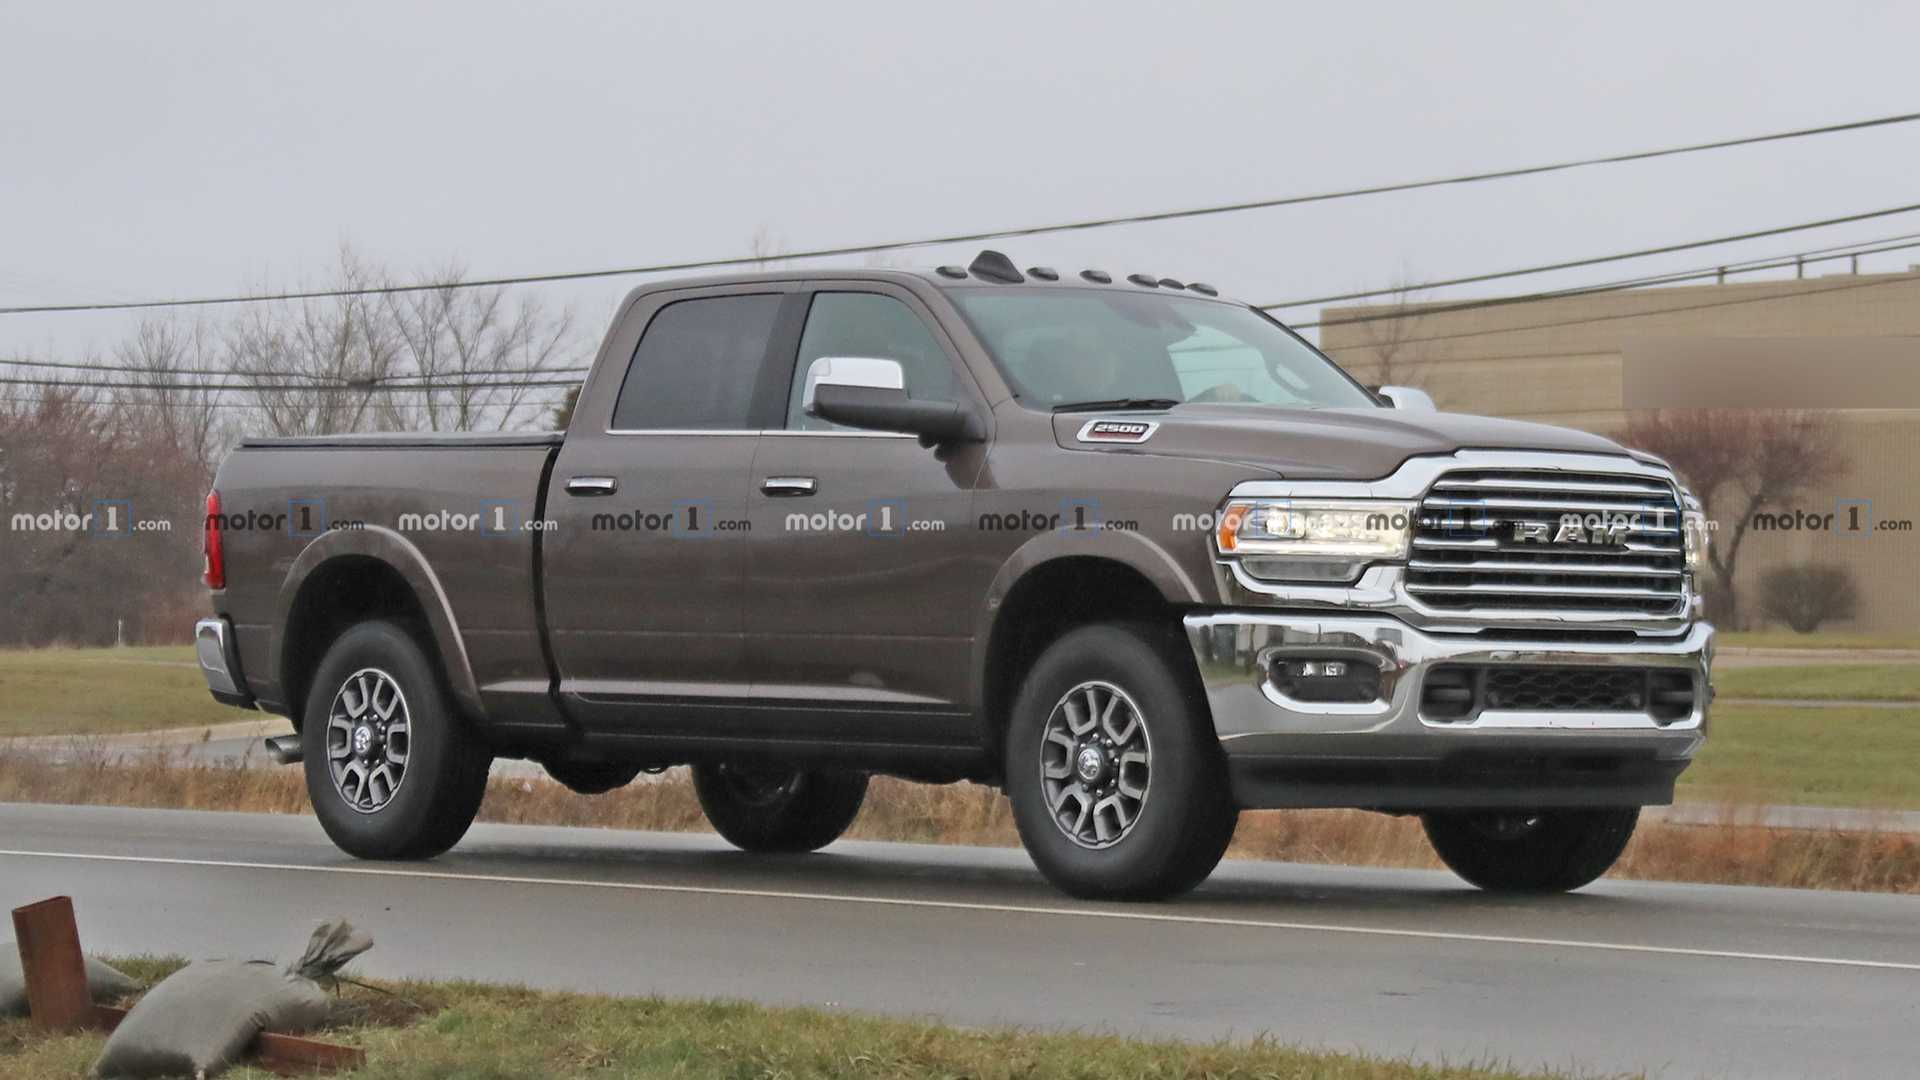 42 All New Dodge Laramie 2020 Release for Dodge Laramie 2020